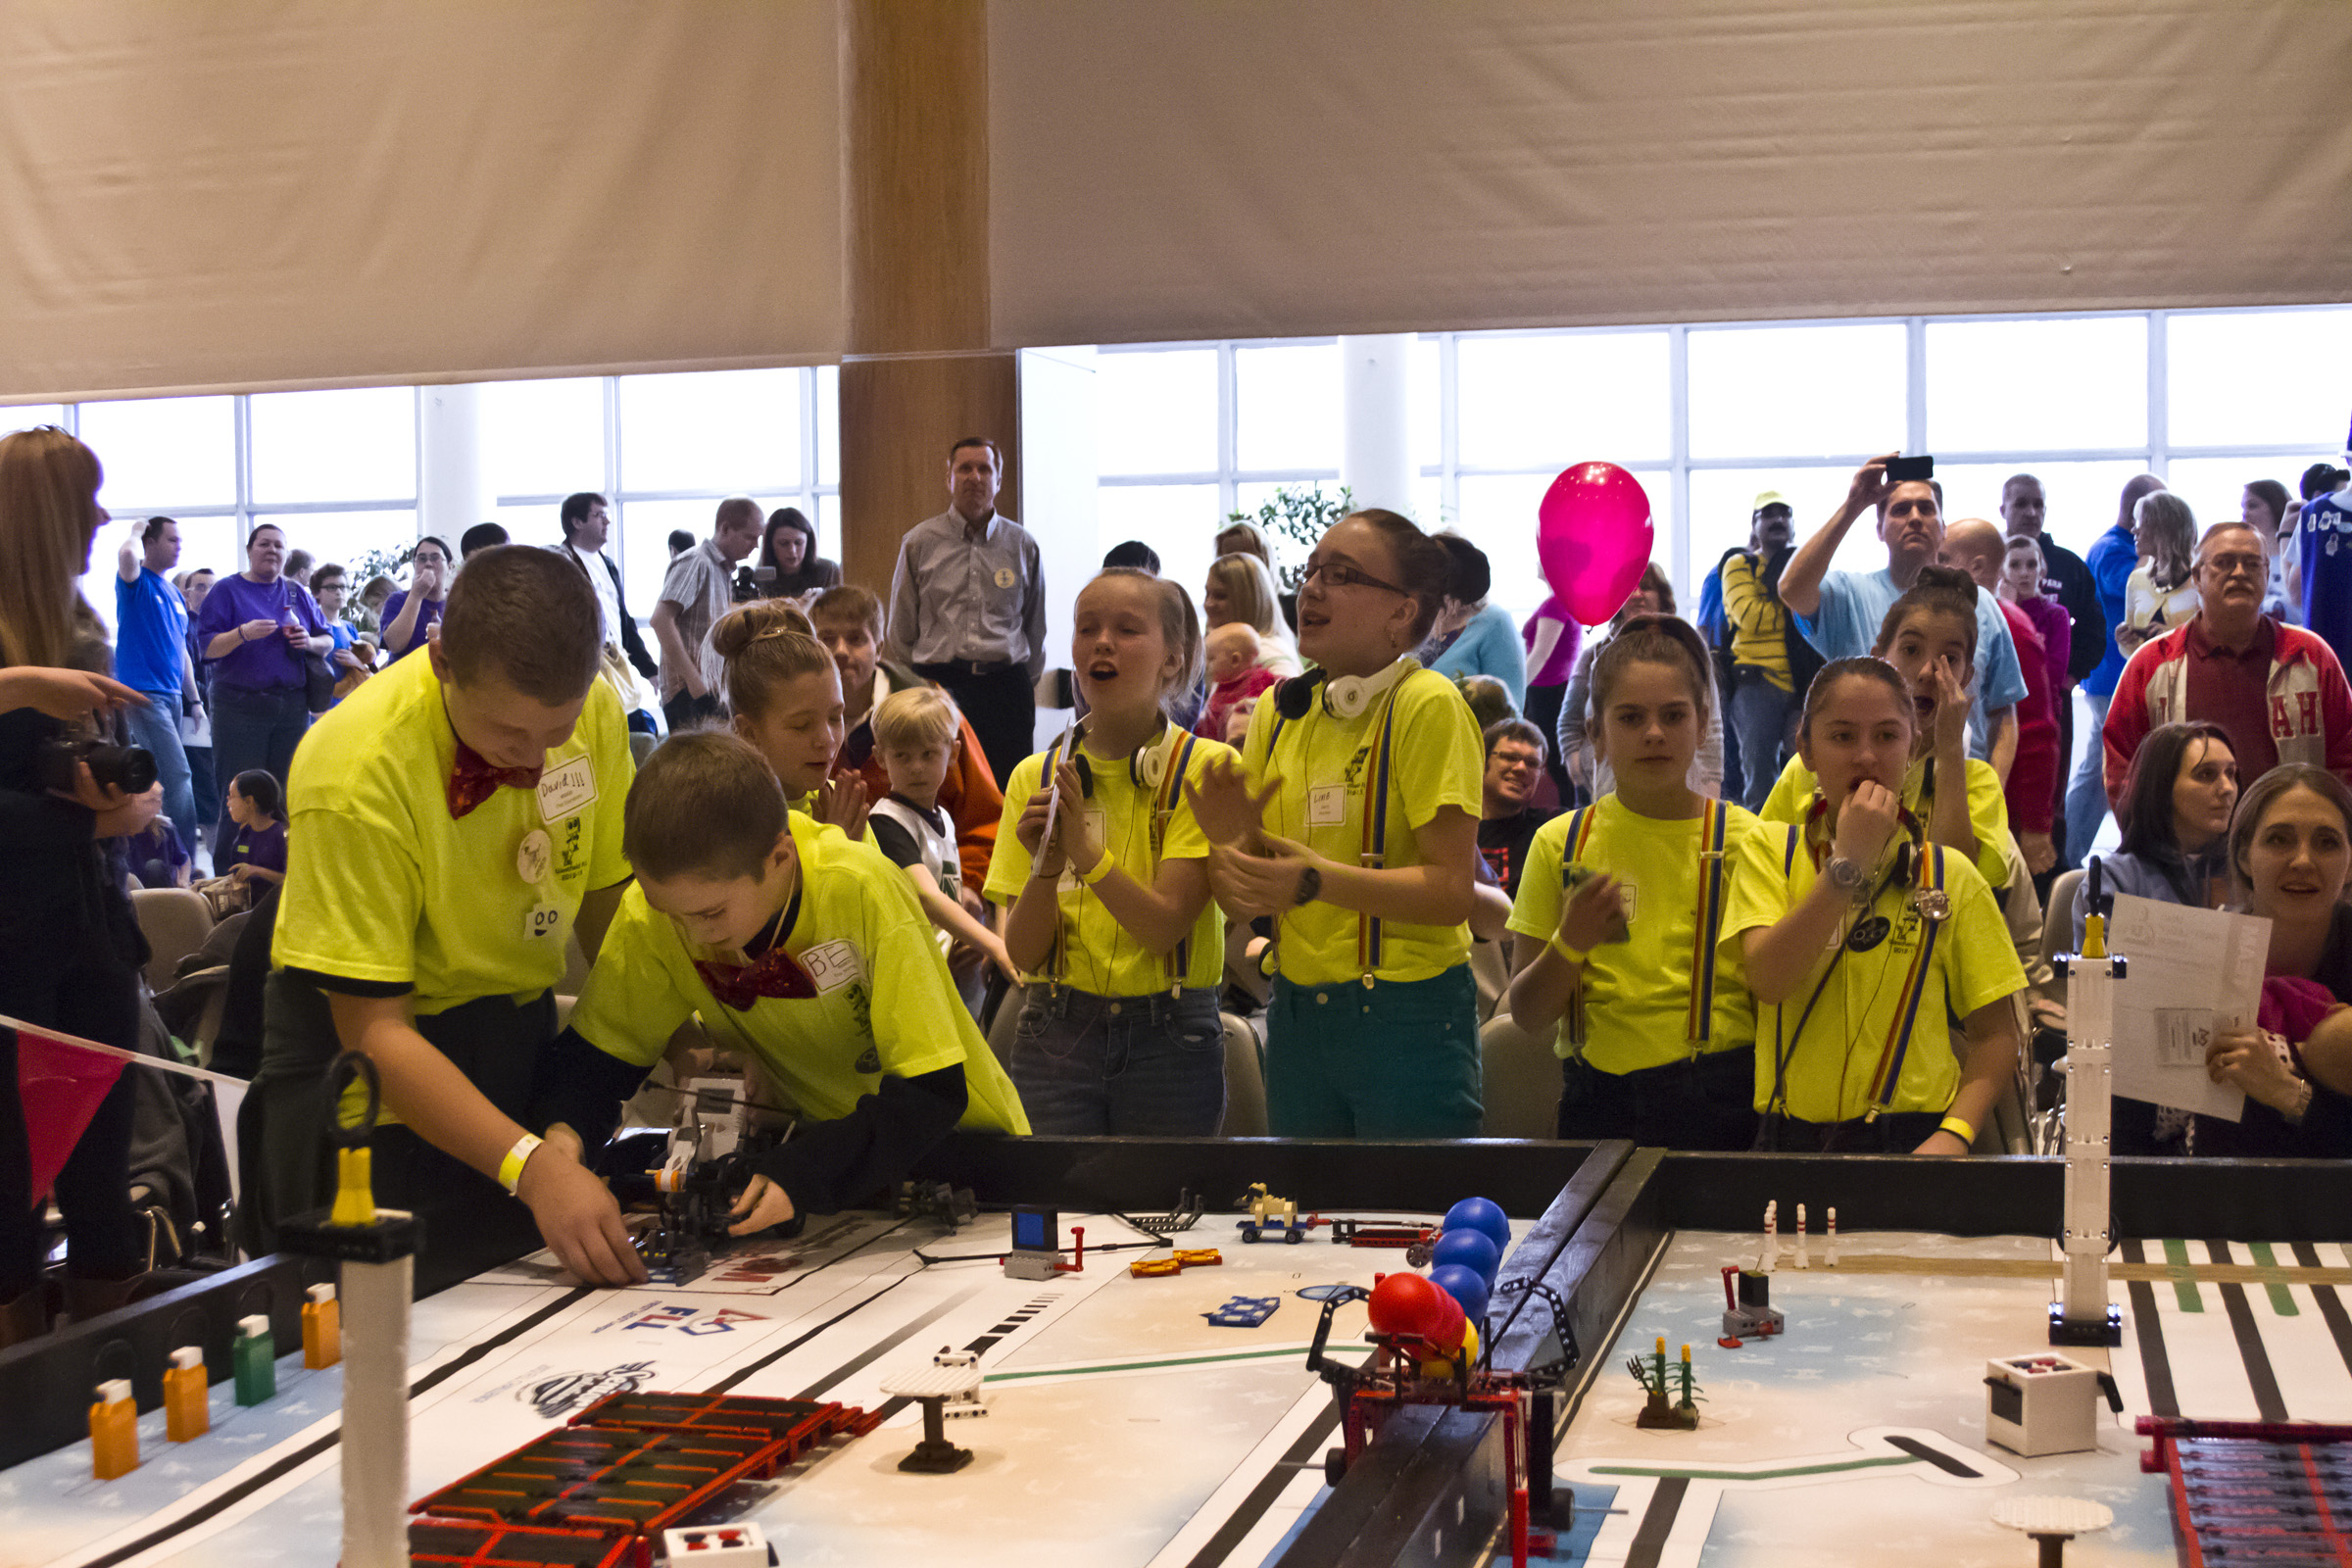 Students compete at the 2012 Utah FIRST LEGO League State Championship.